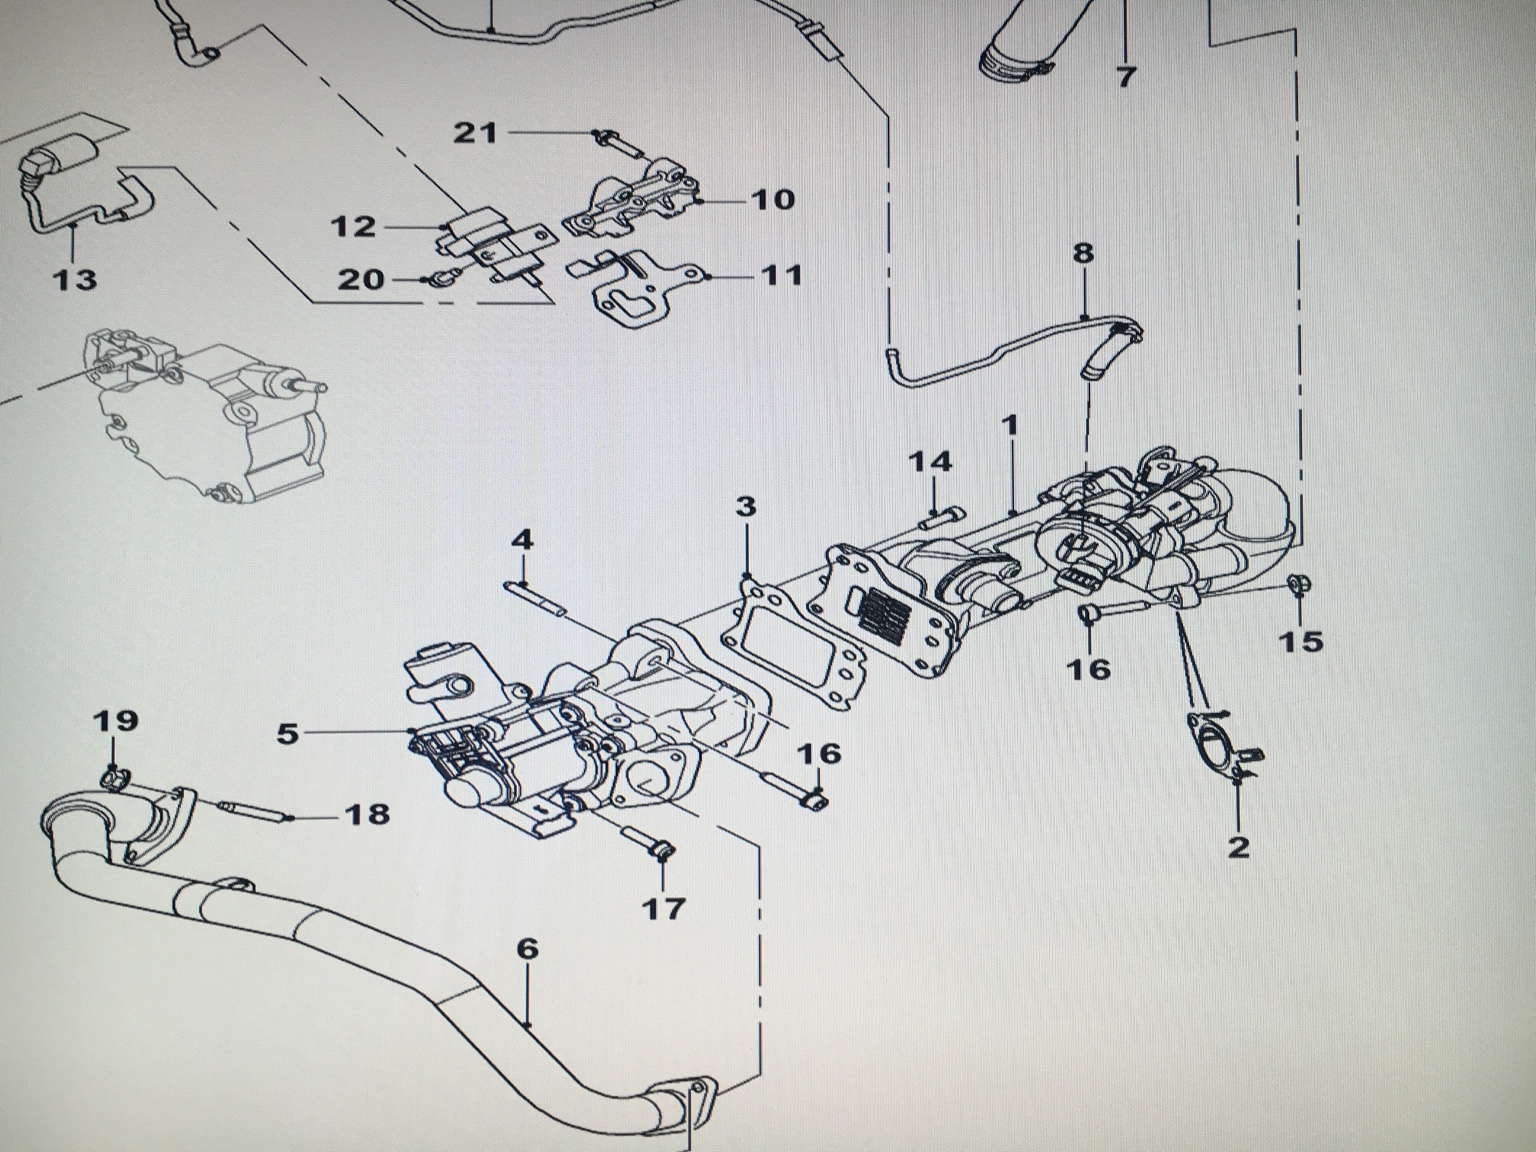 Locating EGR valve on 2 2 XF [Archive] - Jaginfo - Jaguar Forum